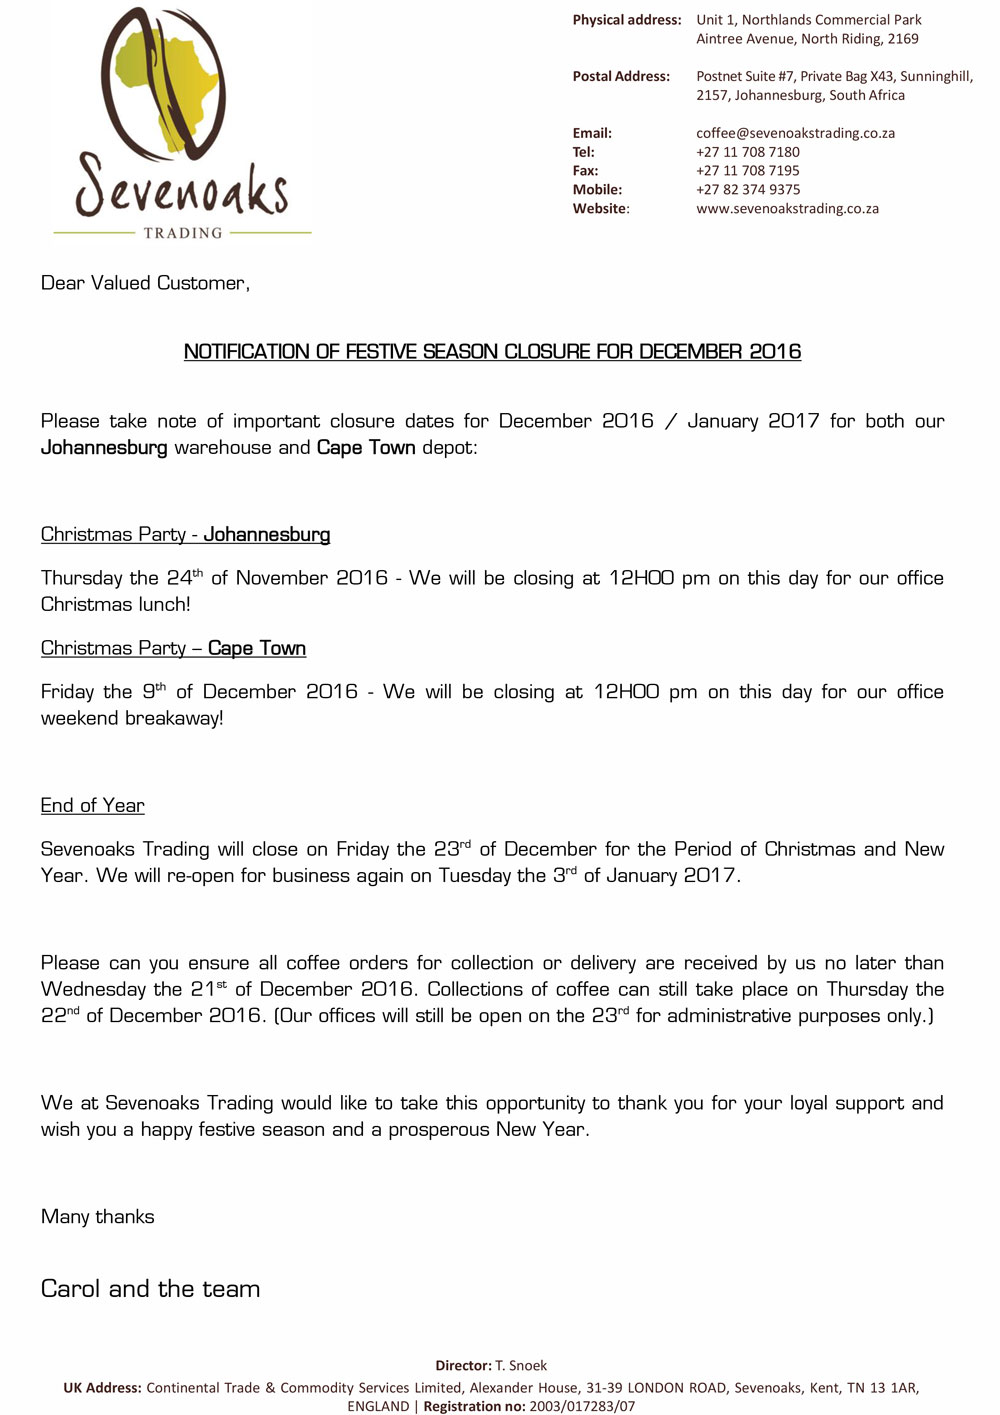 sevenoaks-december-closure-notice-2016